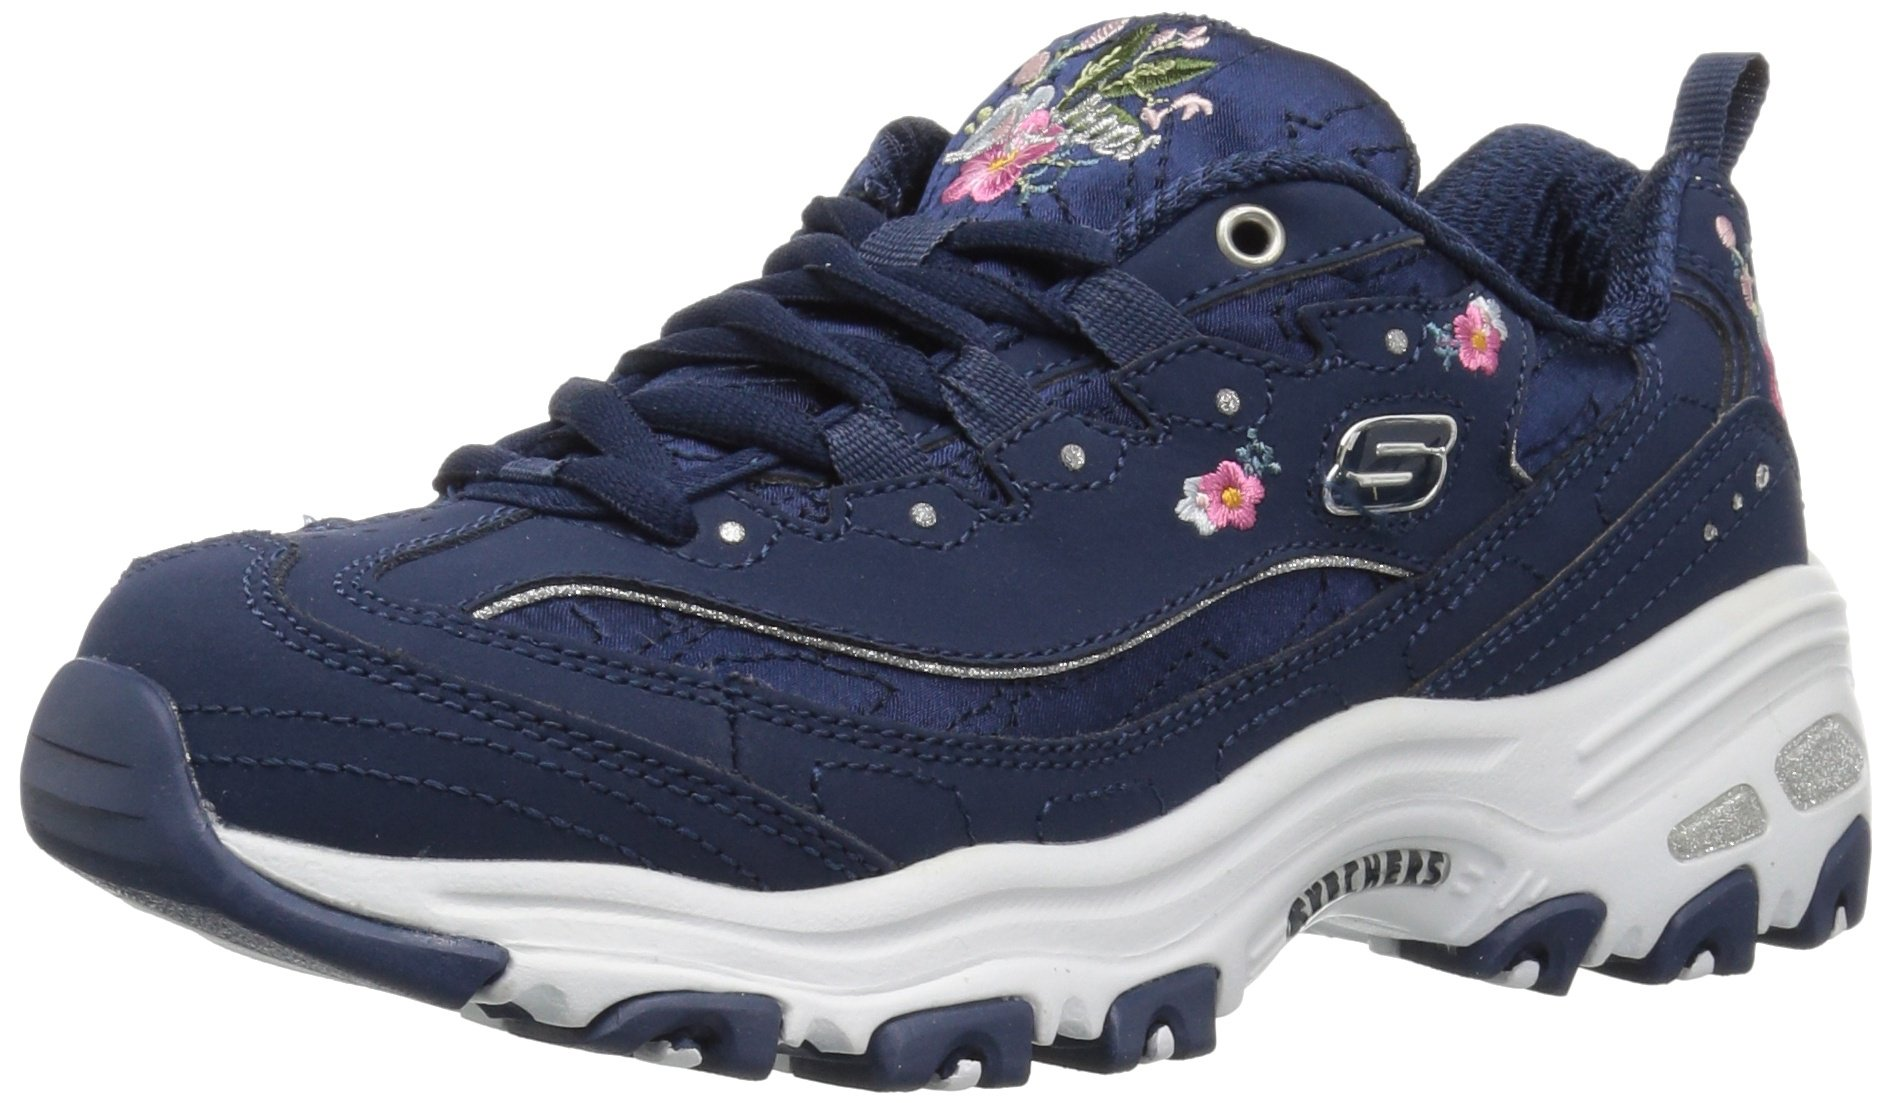 Skechers Women's D'Lites Bright Blossoms Sneaker,Navy,7.5 M US